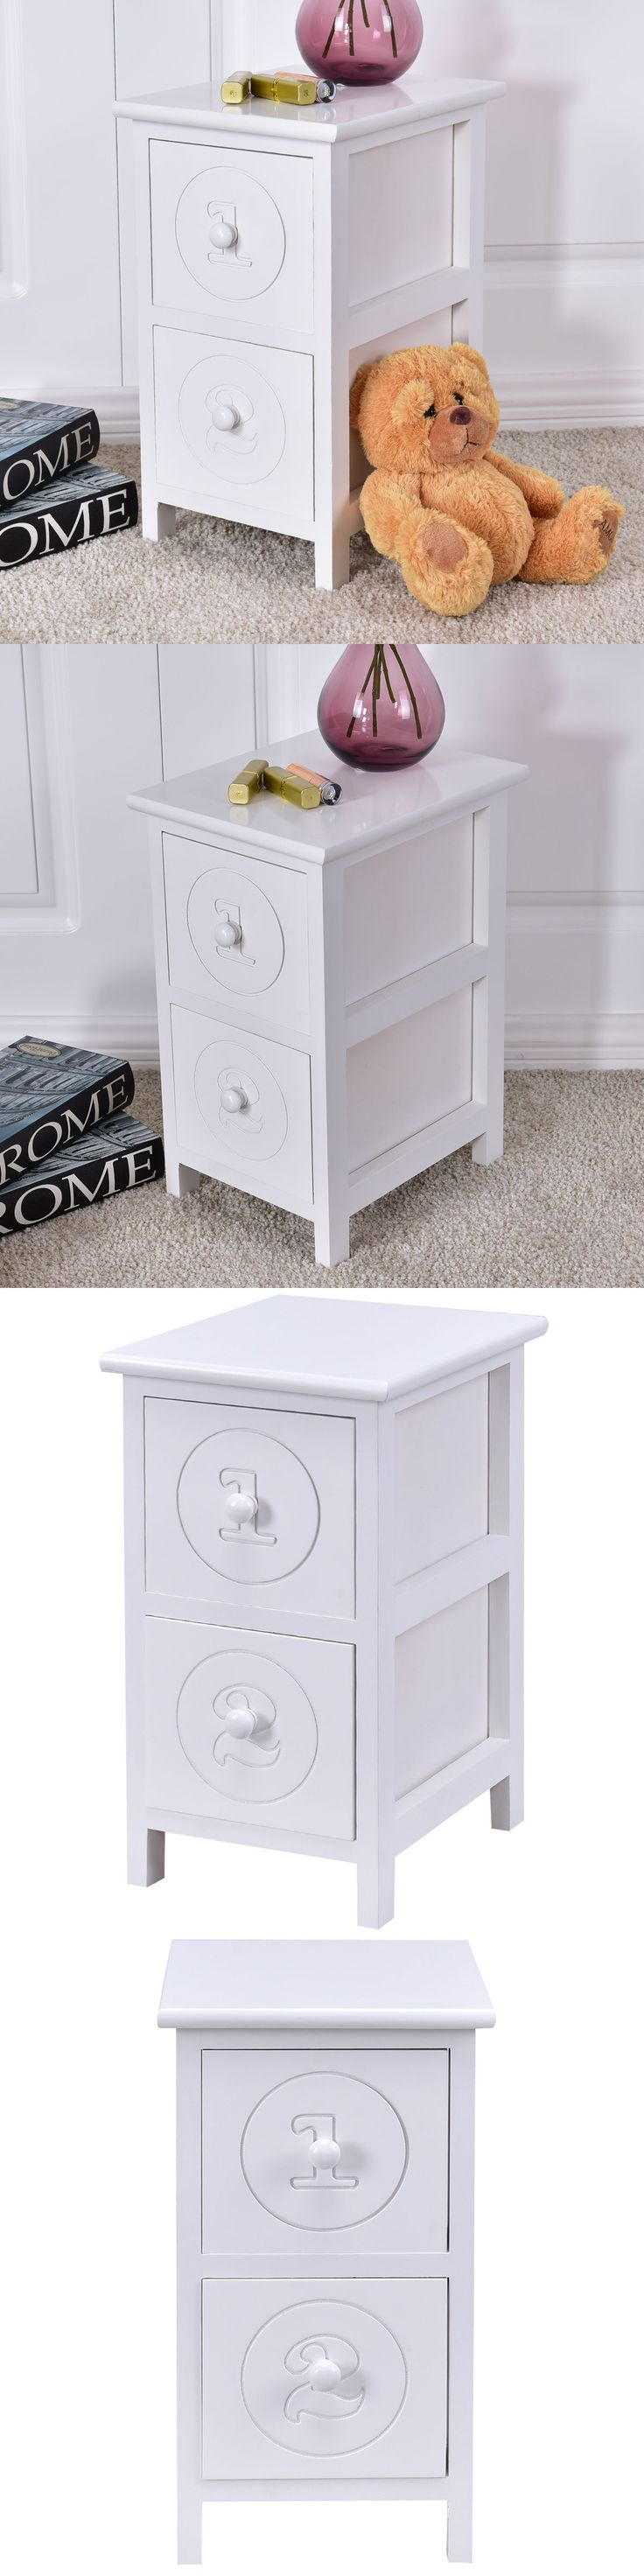 Nightstands 38199: White Wooden Bedside Table Nightstand Cabinet Bedroom Furniture Storage Drawers -> BUY IT NOW ONLY: $31.95 on eBay!